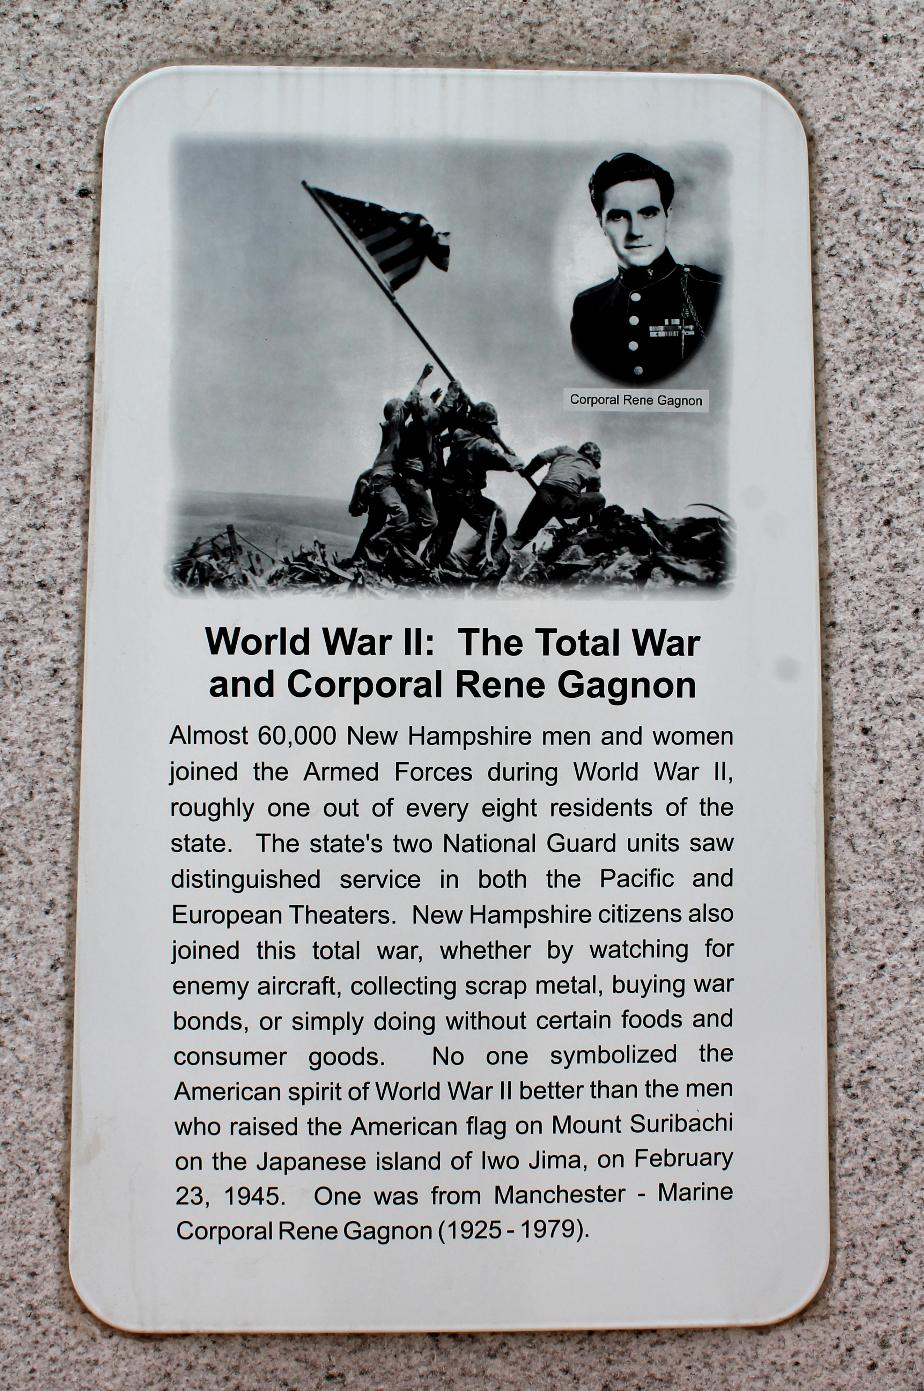 NH State Veterans Cemetery - World War II & Corporal Rene Gagnon